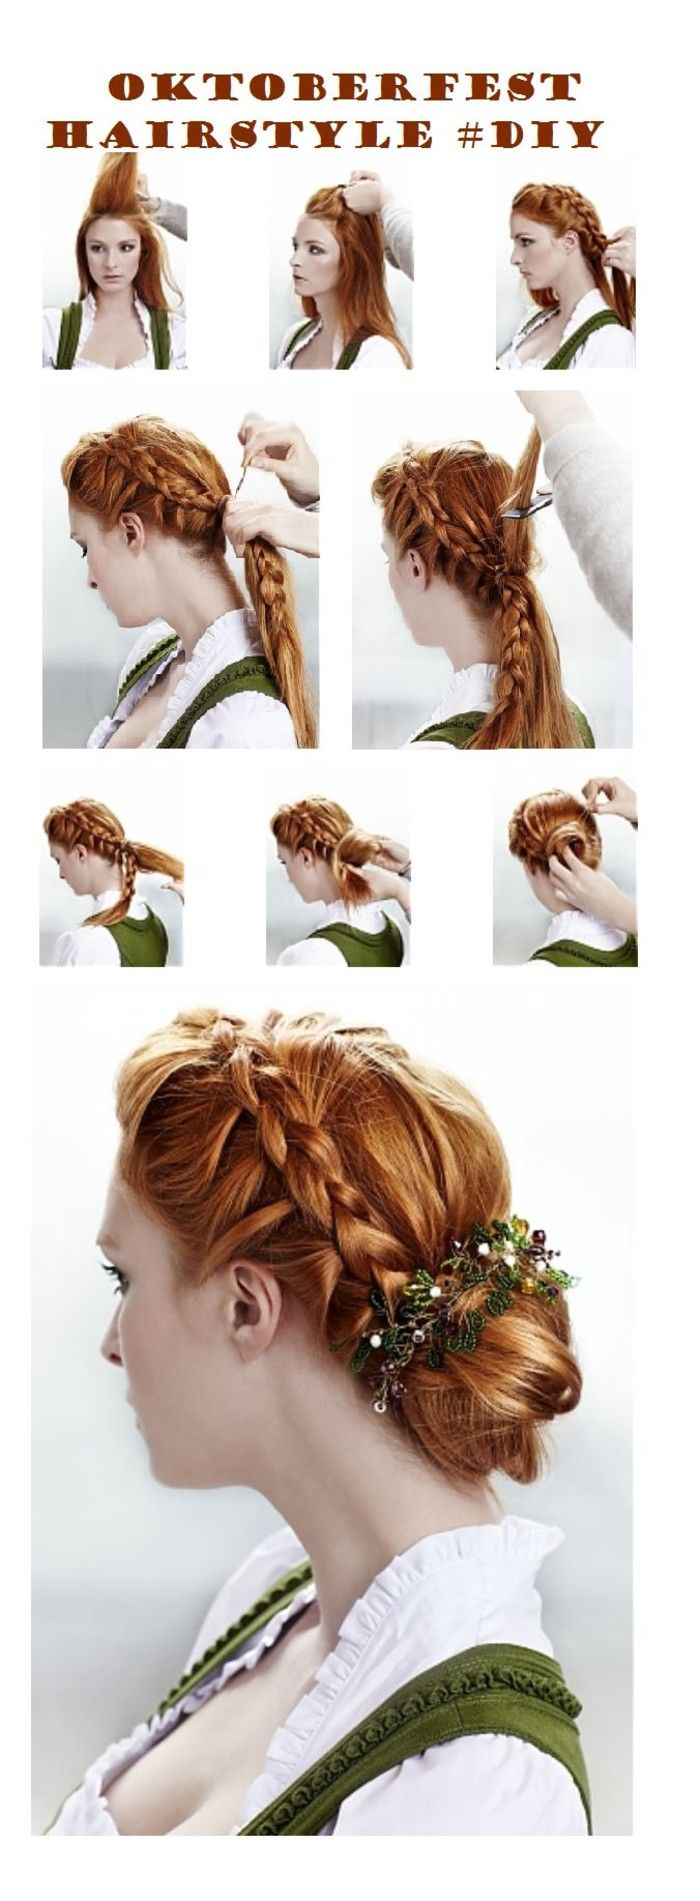 Oktoberfest Traditional-Inspired Hairstyle DIY                                                                                                                                                                                 More